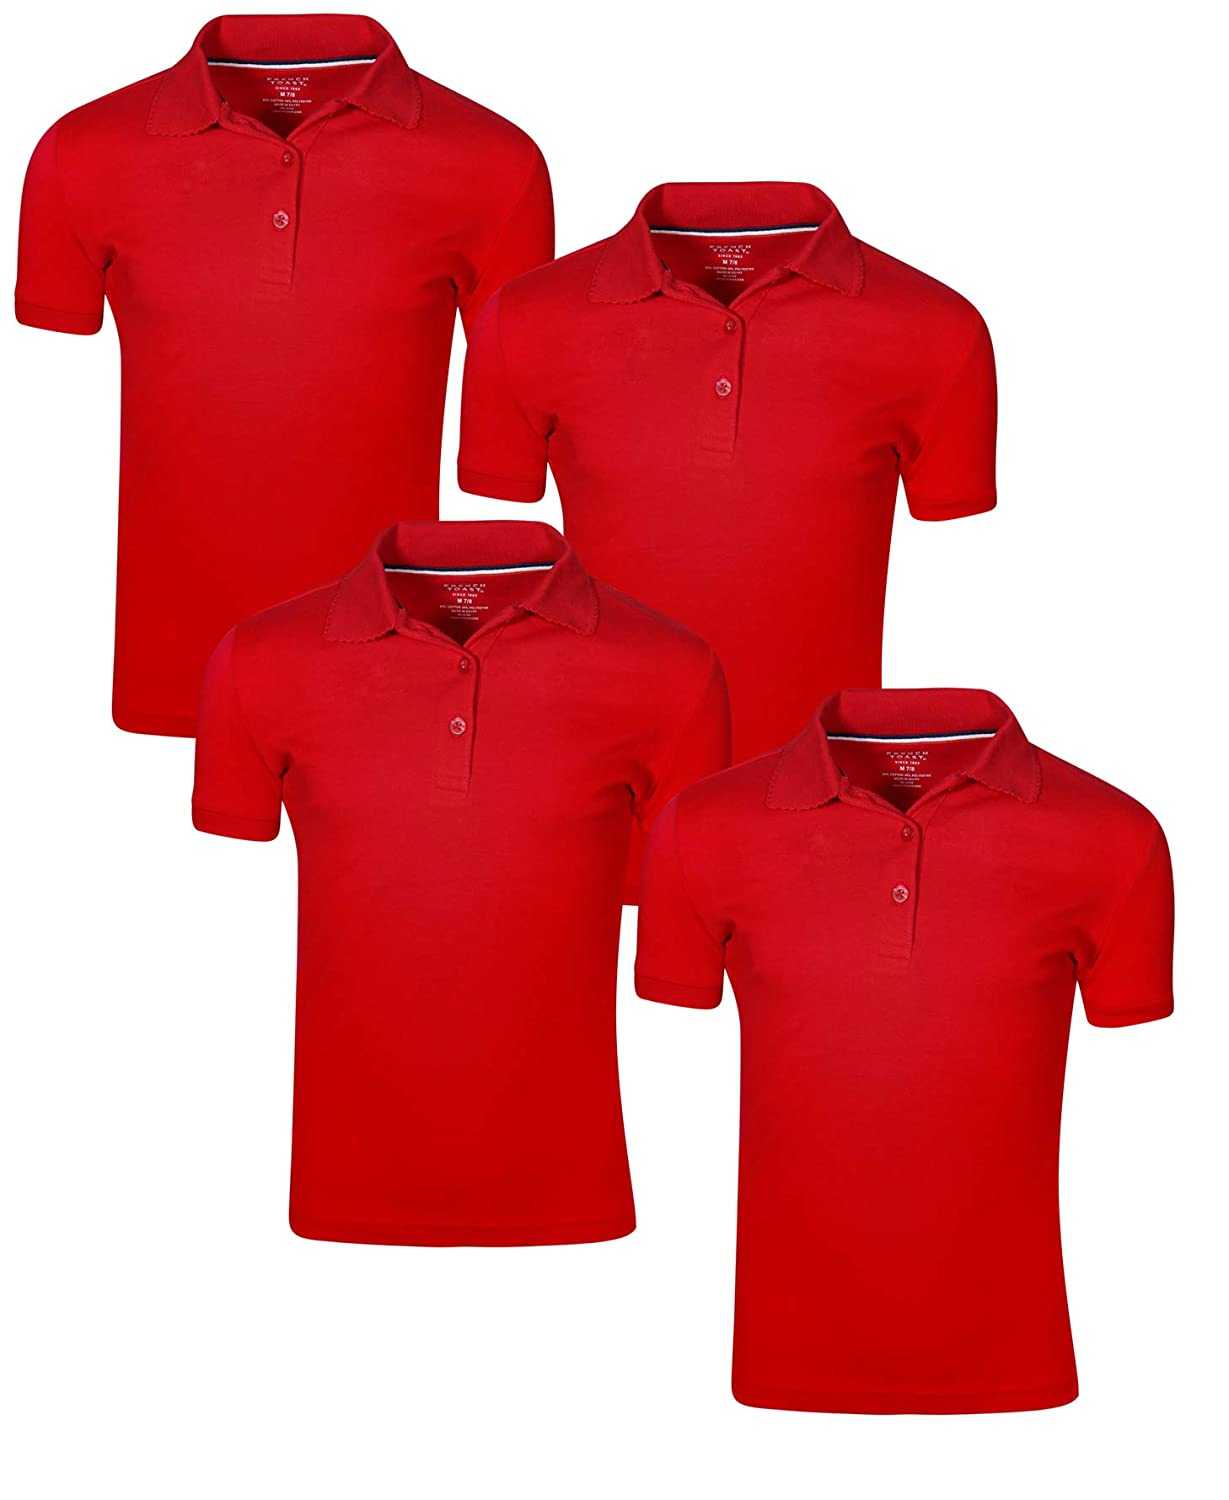 French Toast Girls Uniform Polo Short Sleeve Interlock 4 Pack